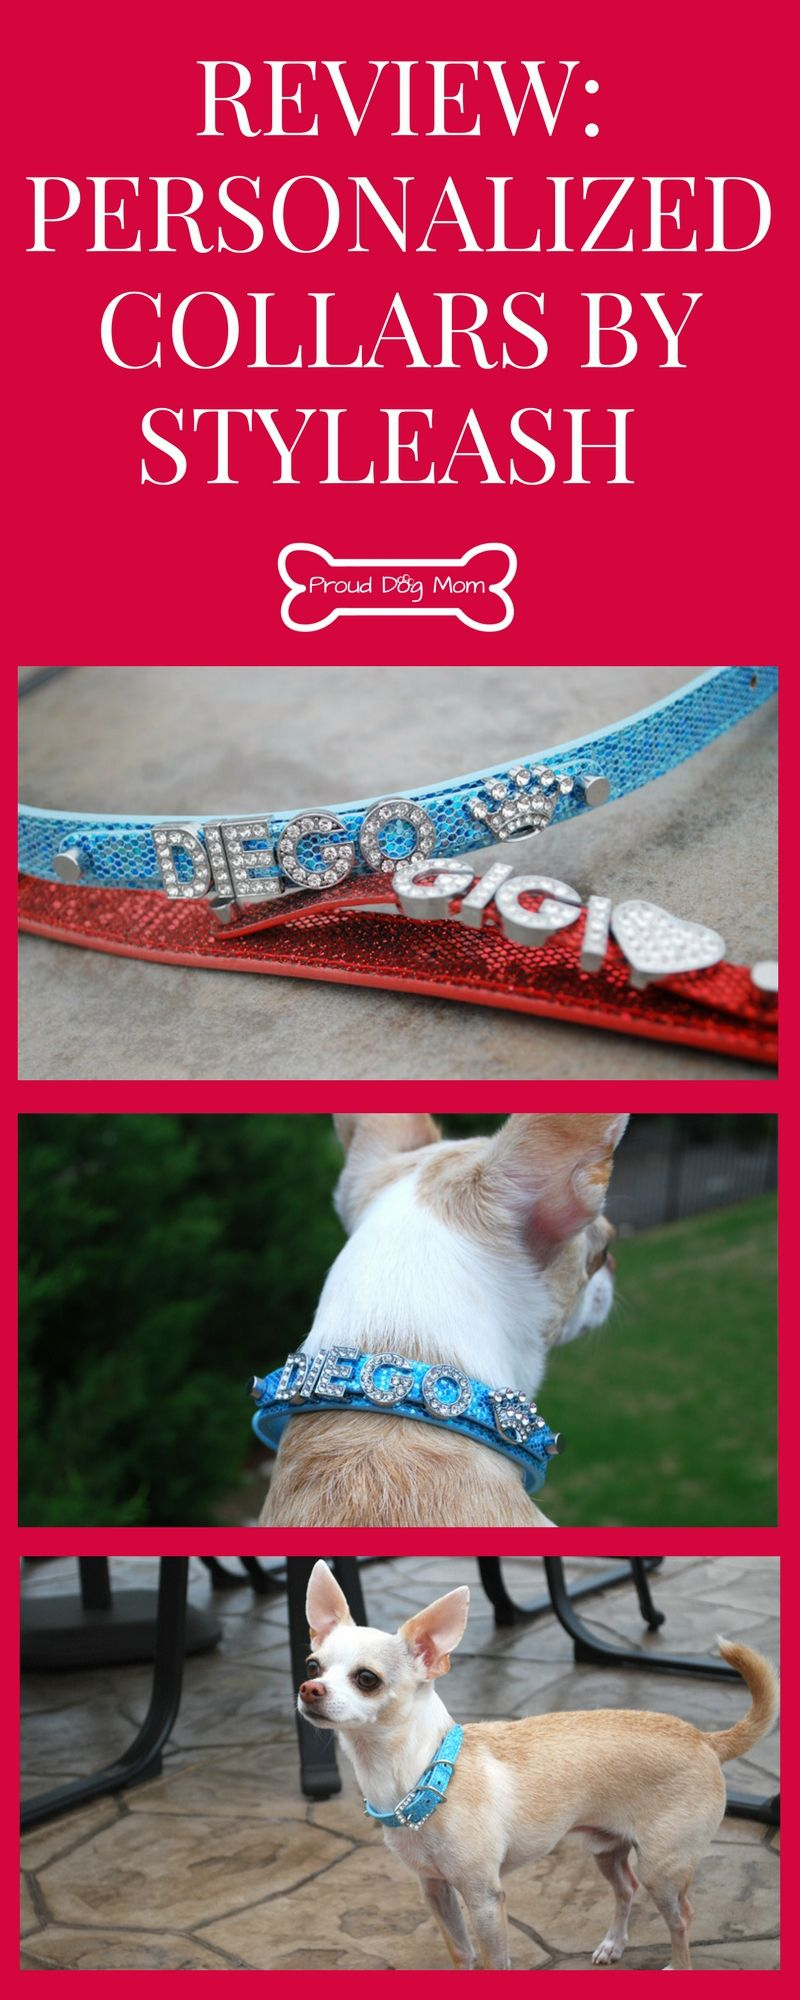 Review Personalized Collars By Styleash Shop Personalized Collar Dog Product Review Dogs